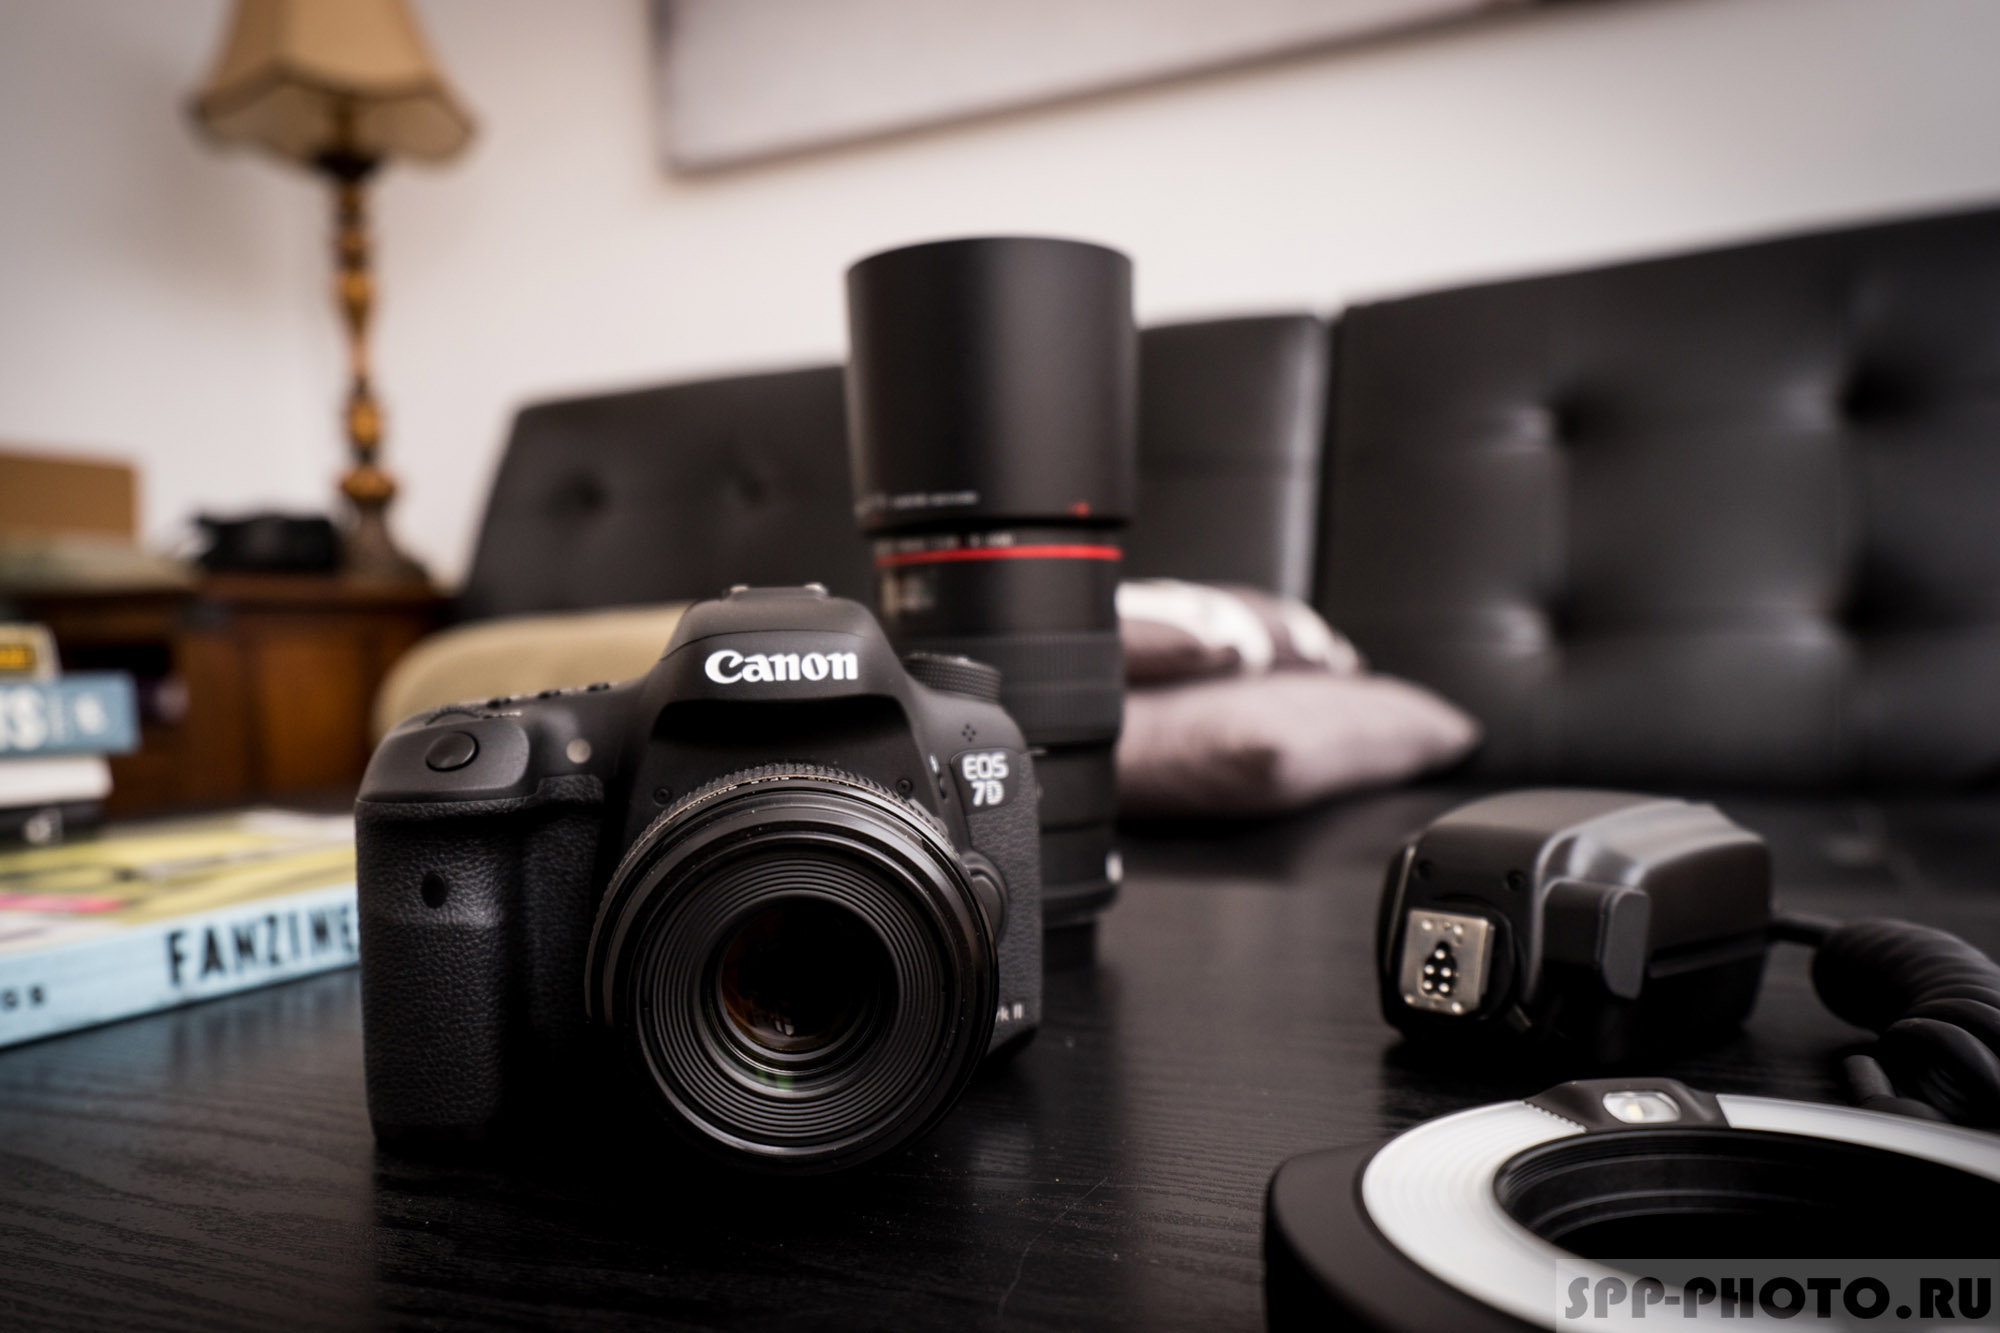 Canon lens for low light photography